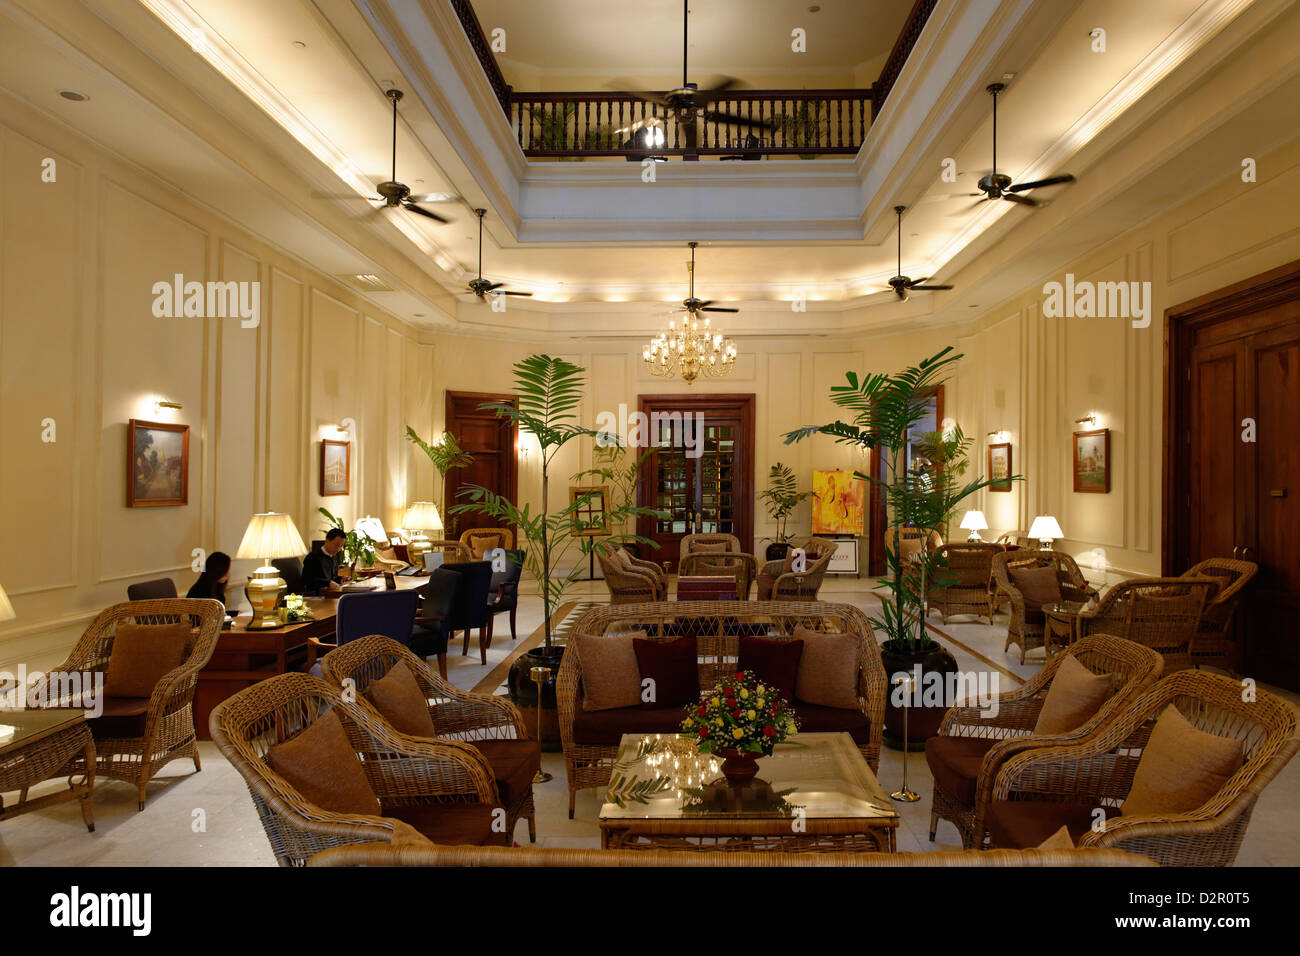 The Strand Hotel is a Victorian-style hotel built in 1896. Yangon region. Burma. Republic of the Union of Myanmar. - Stock Image